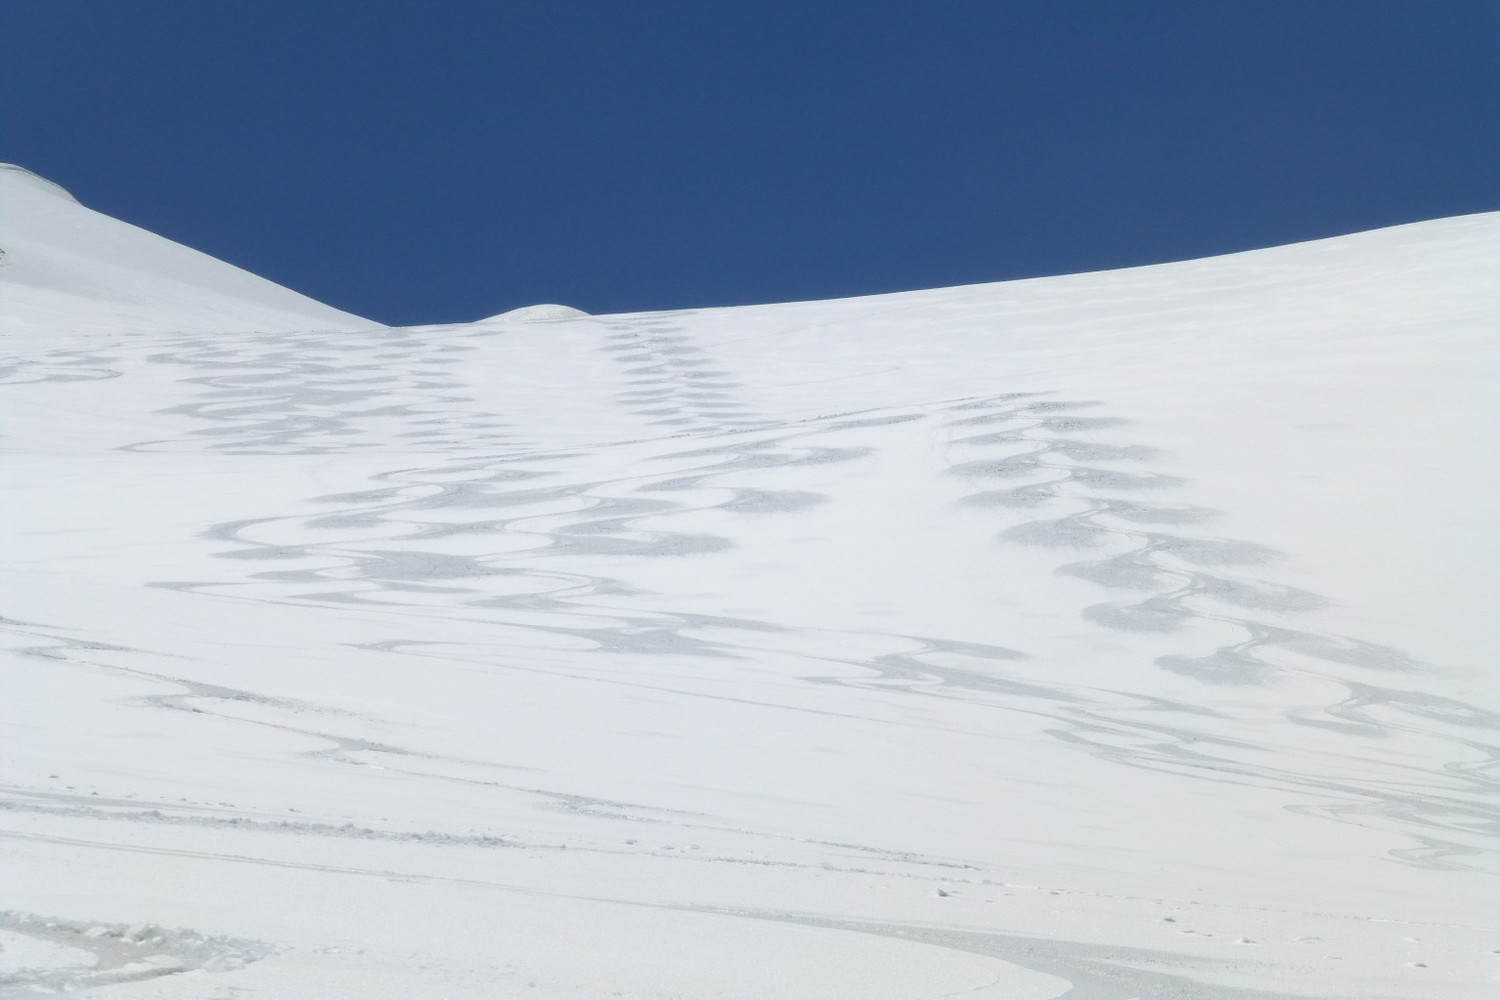 che neve